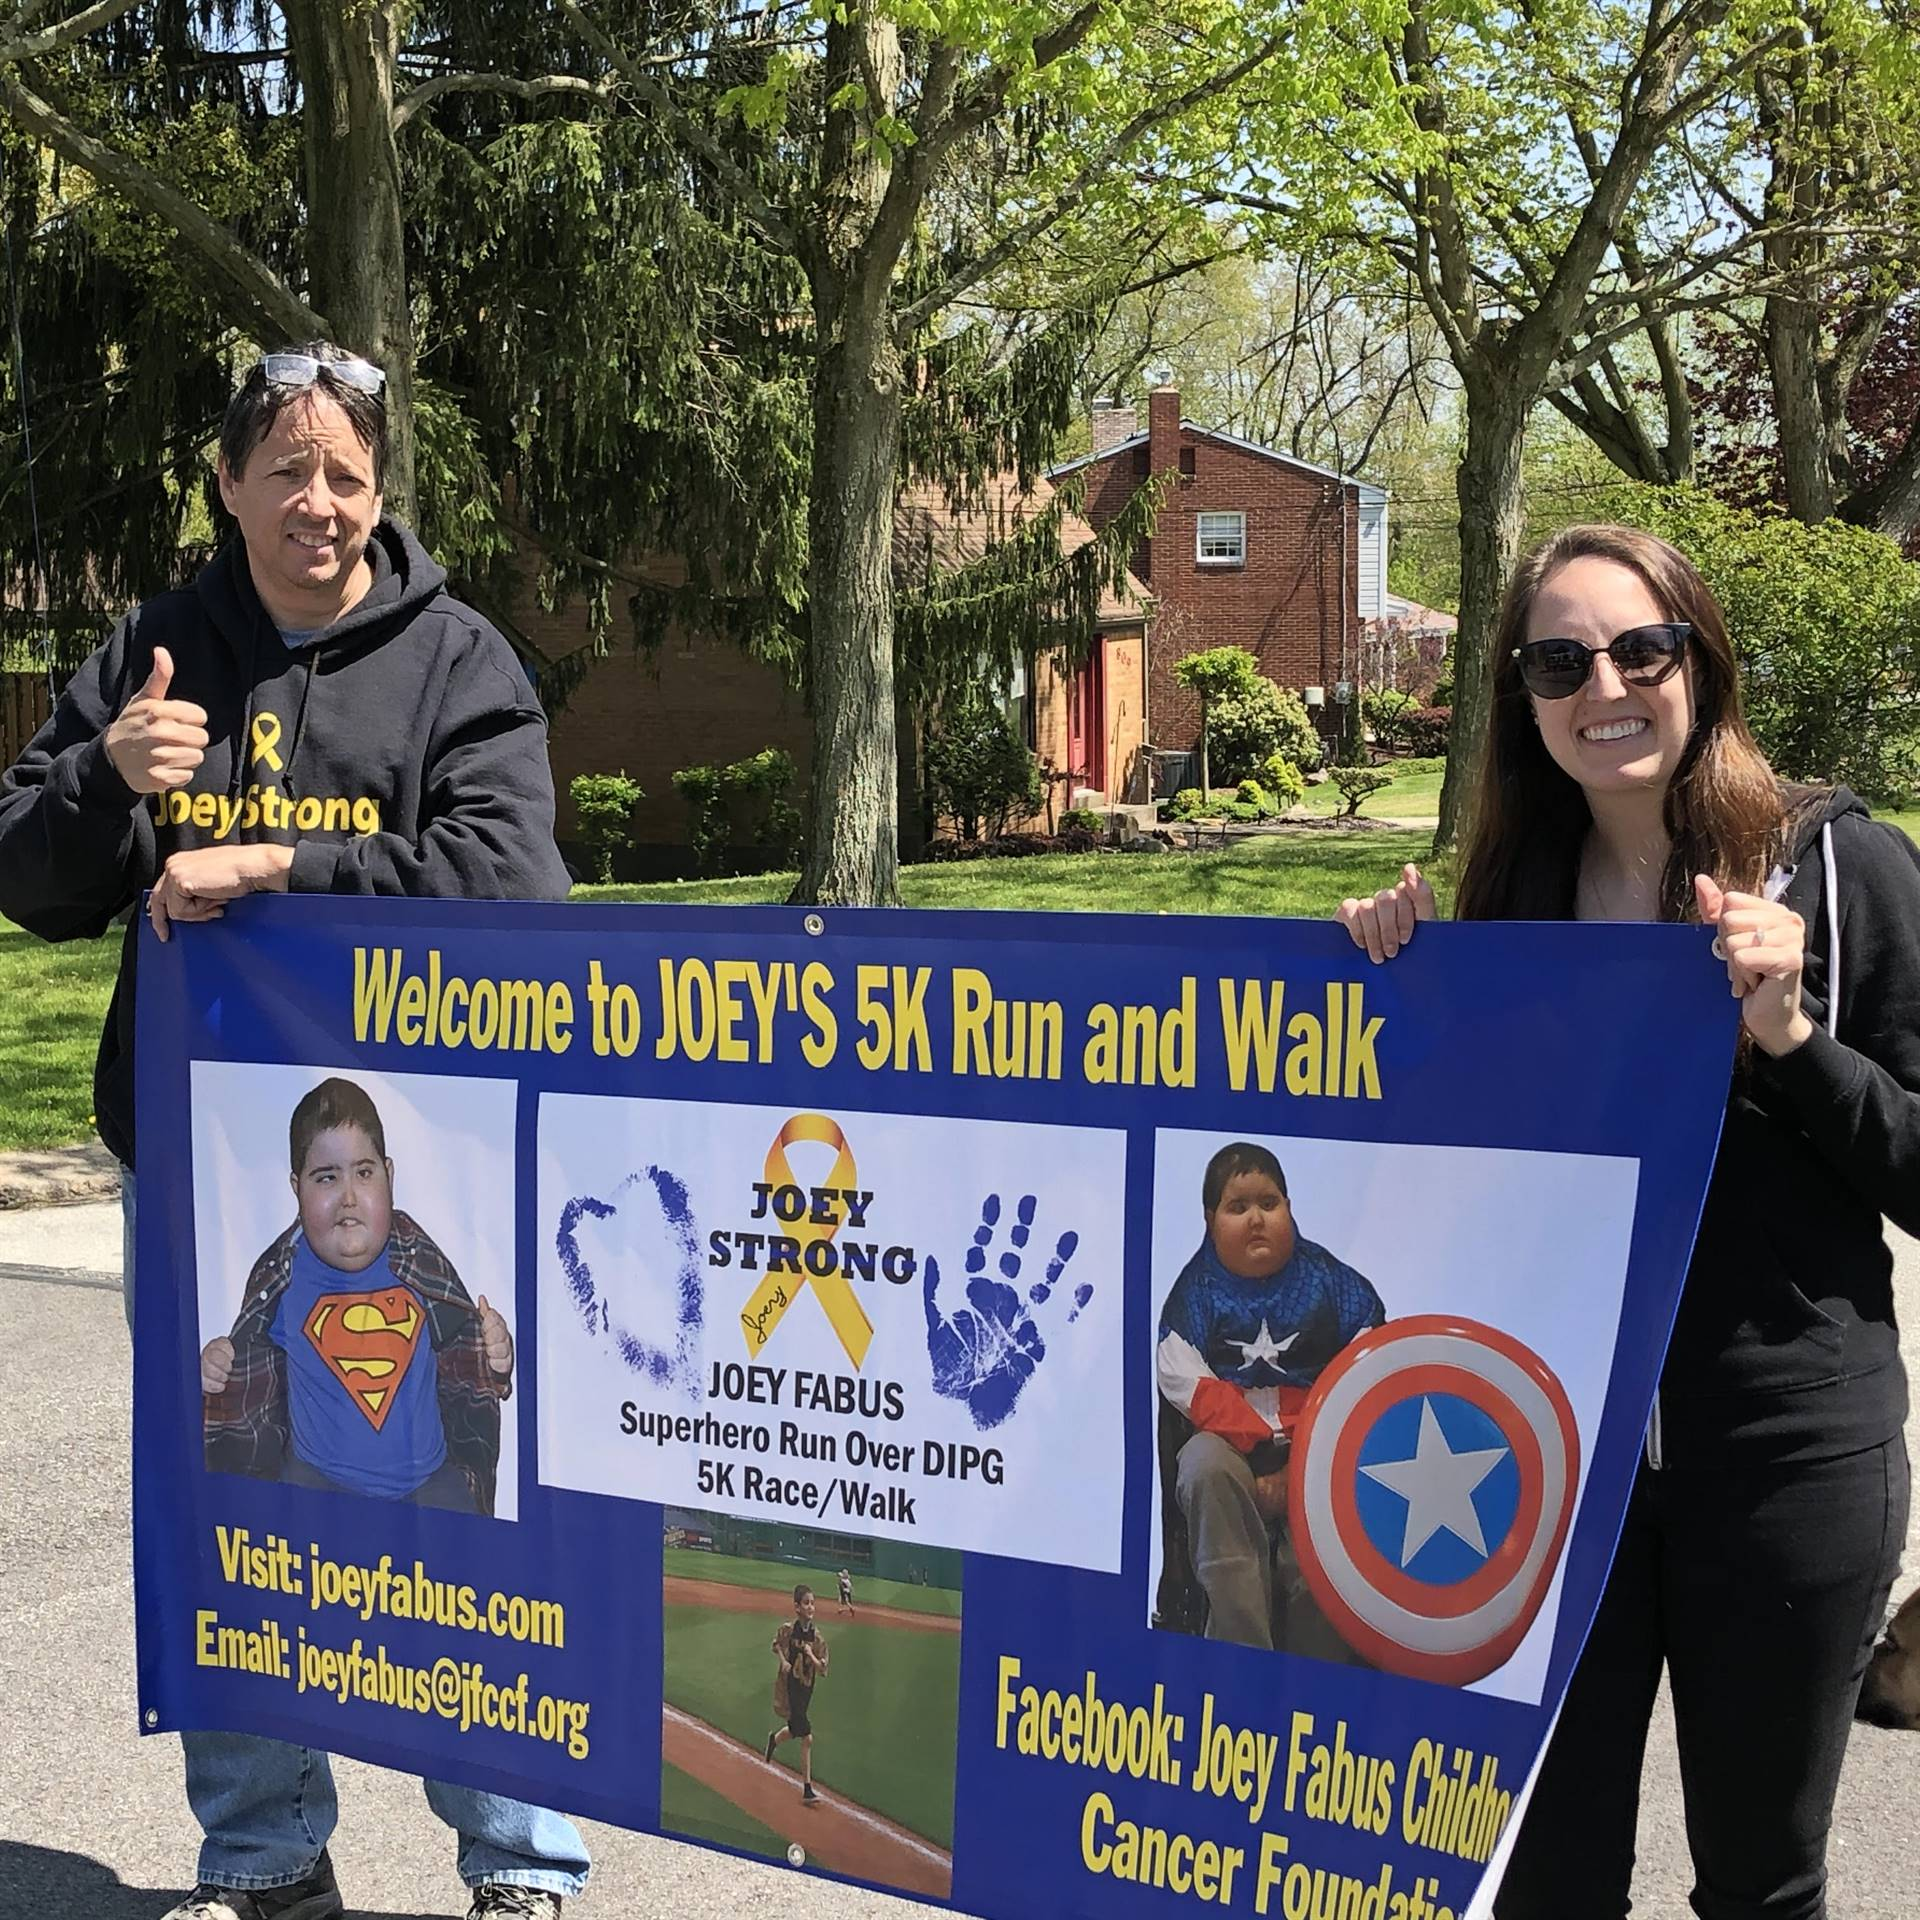 Two parents holding a banner